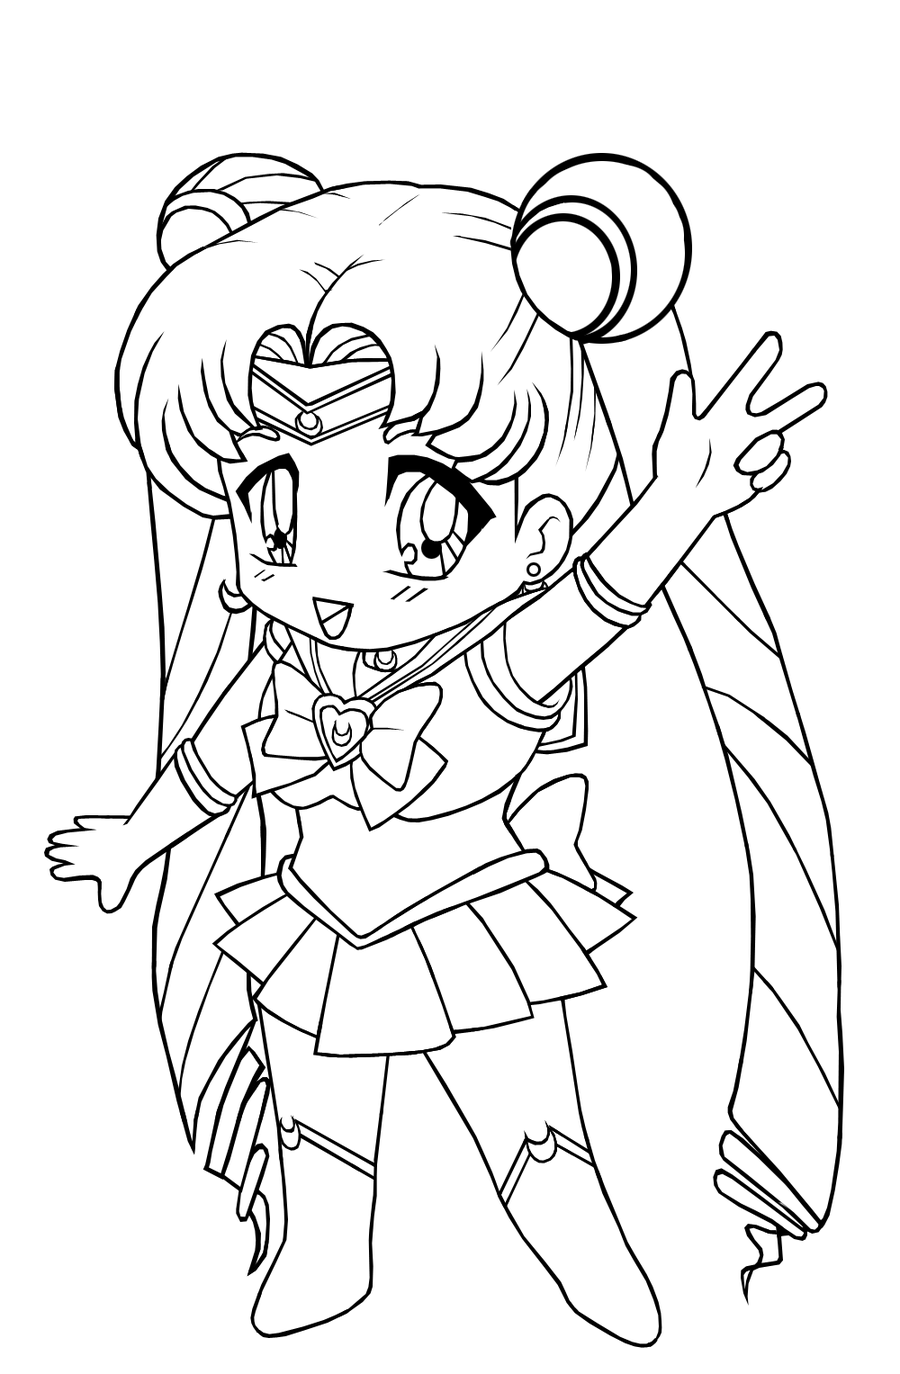 free anime coloring anime coloring pages best coloring pages for kids anime free coloring